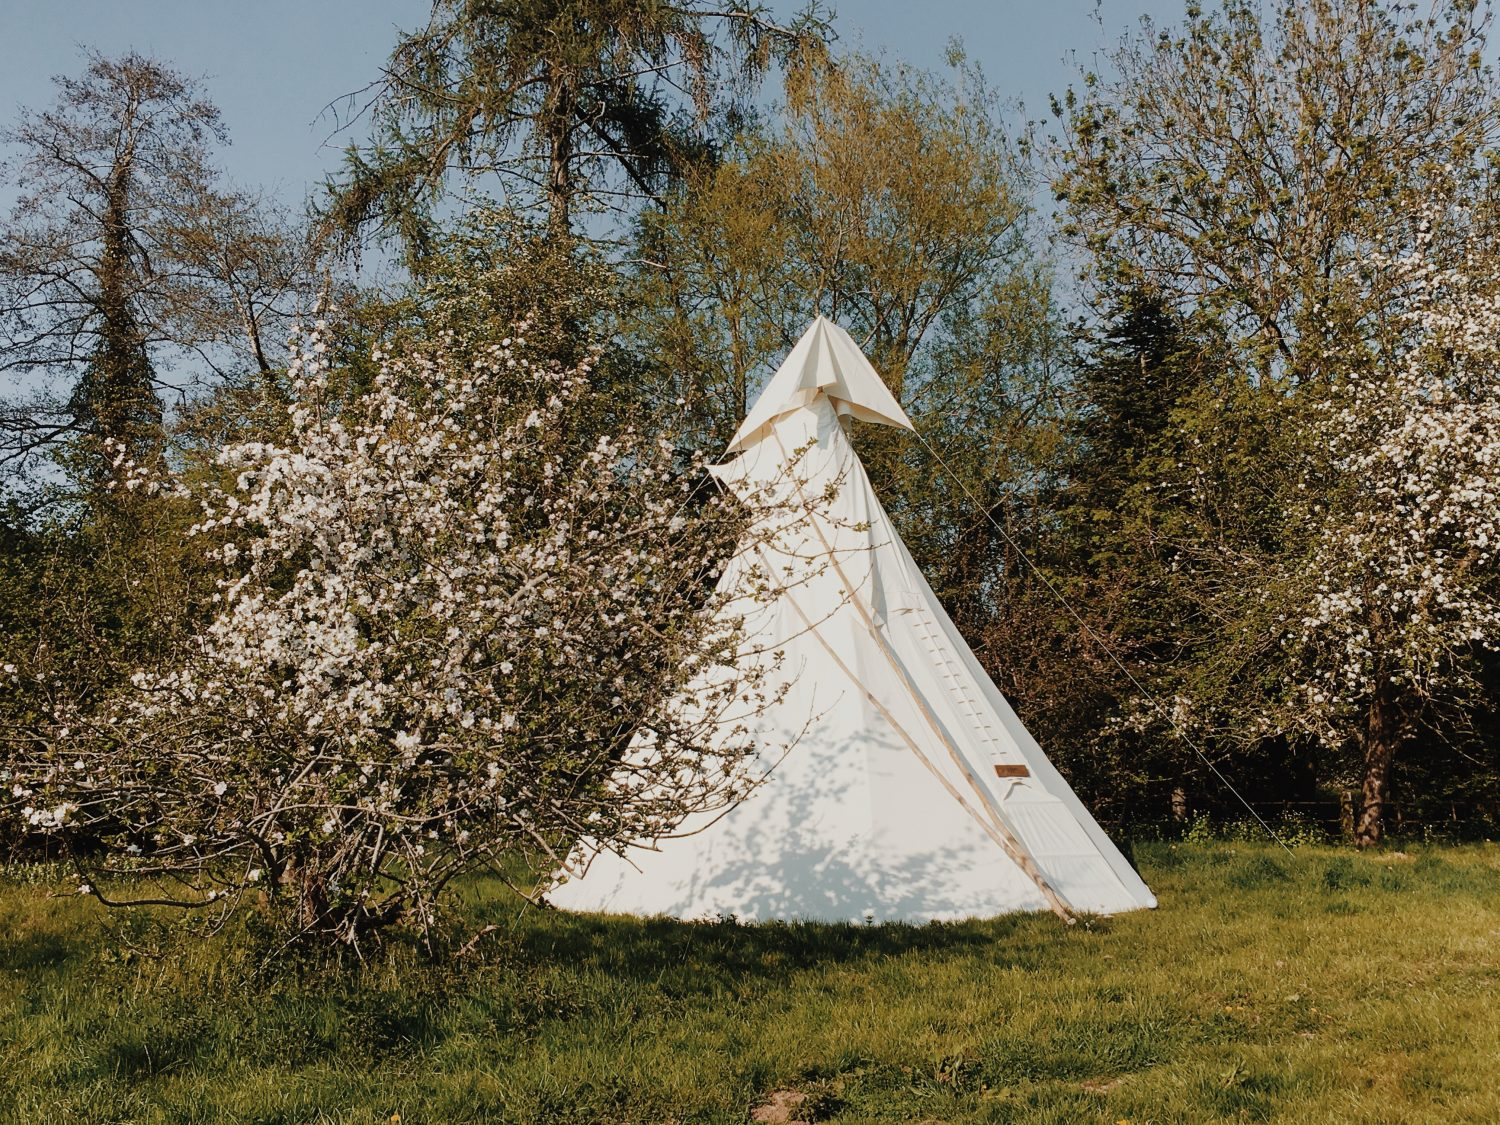 "<h1><span style=""color: #5e715b"">Our Tipis</span></h1>"